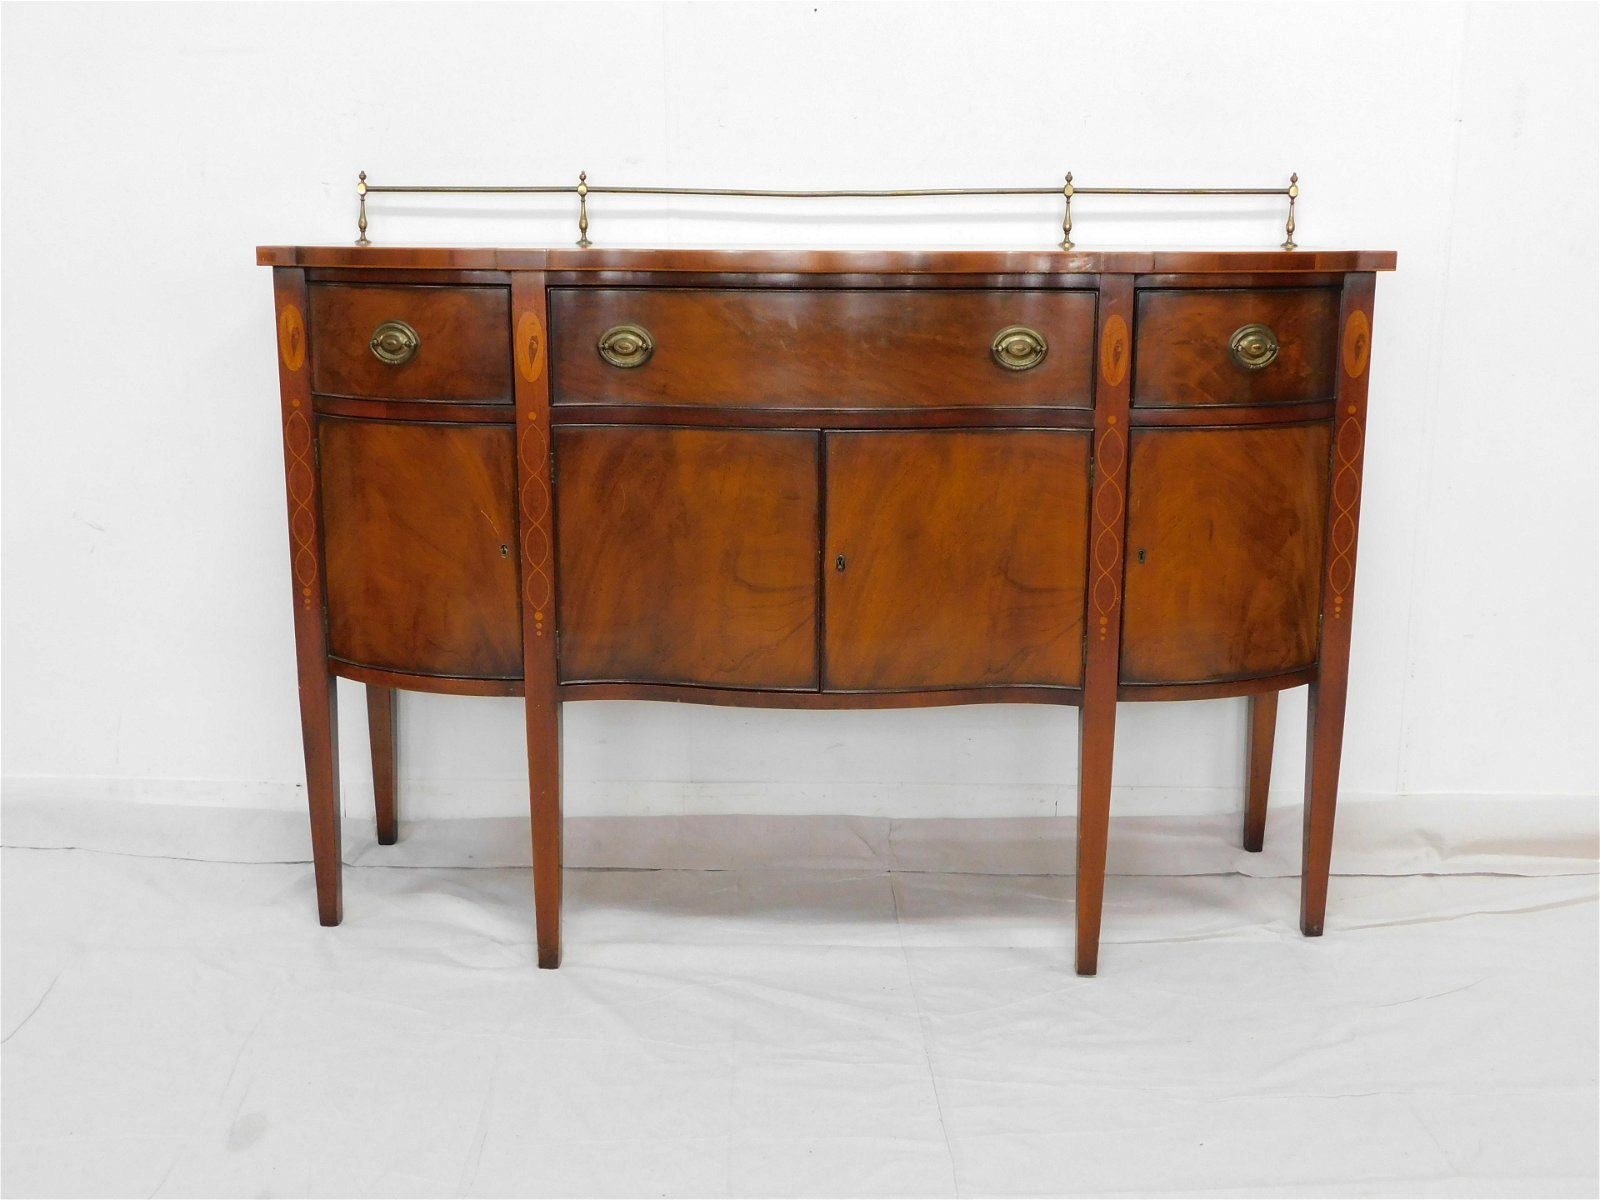 Wallace Nutting Inlaid Sideboard by Drexel